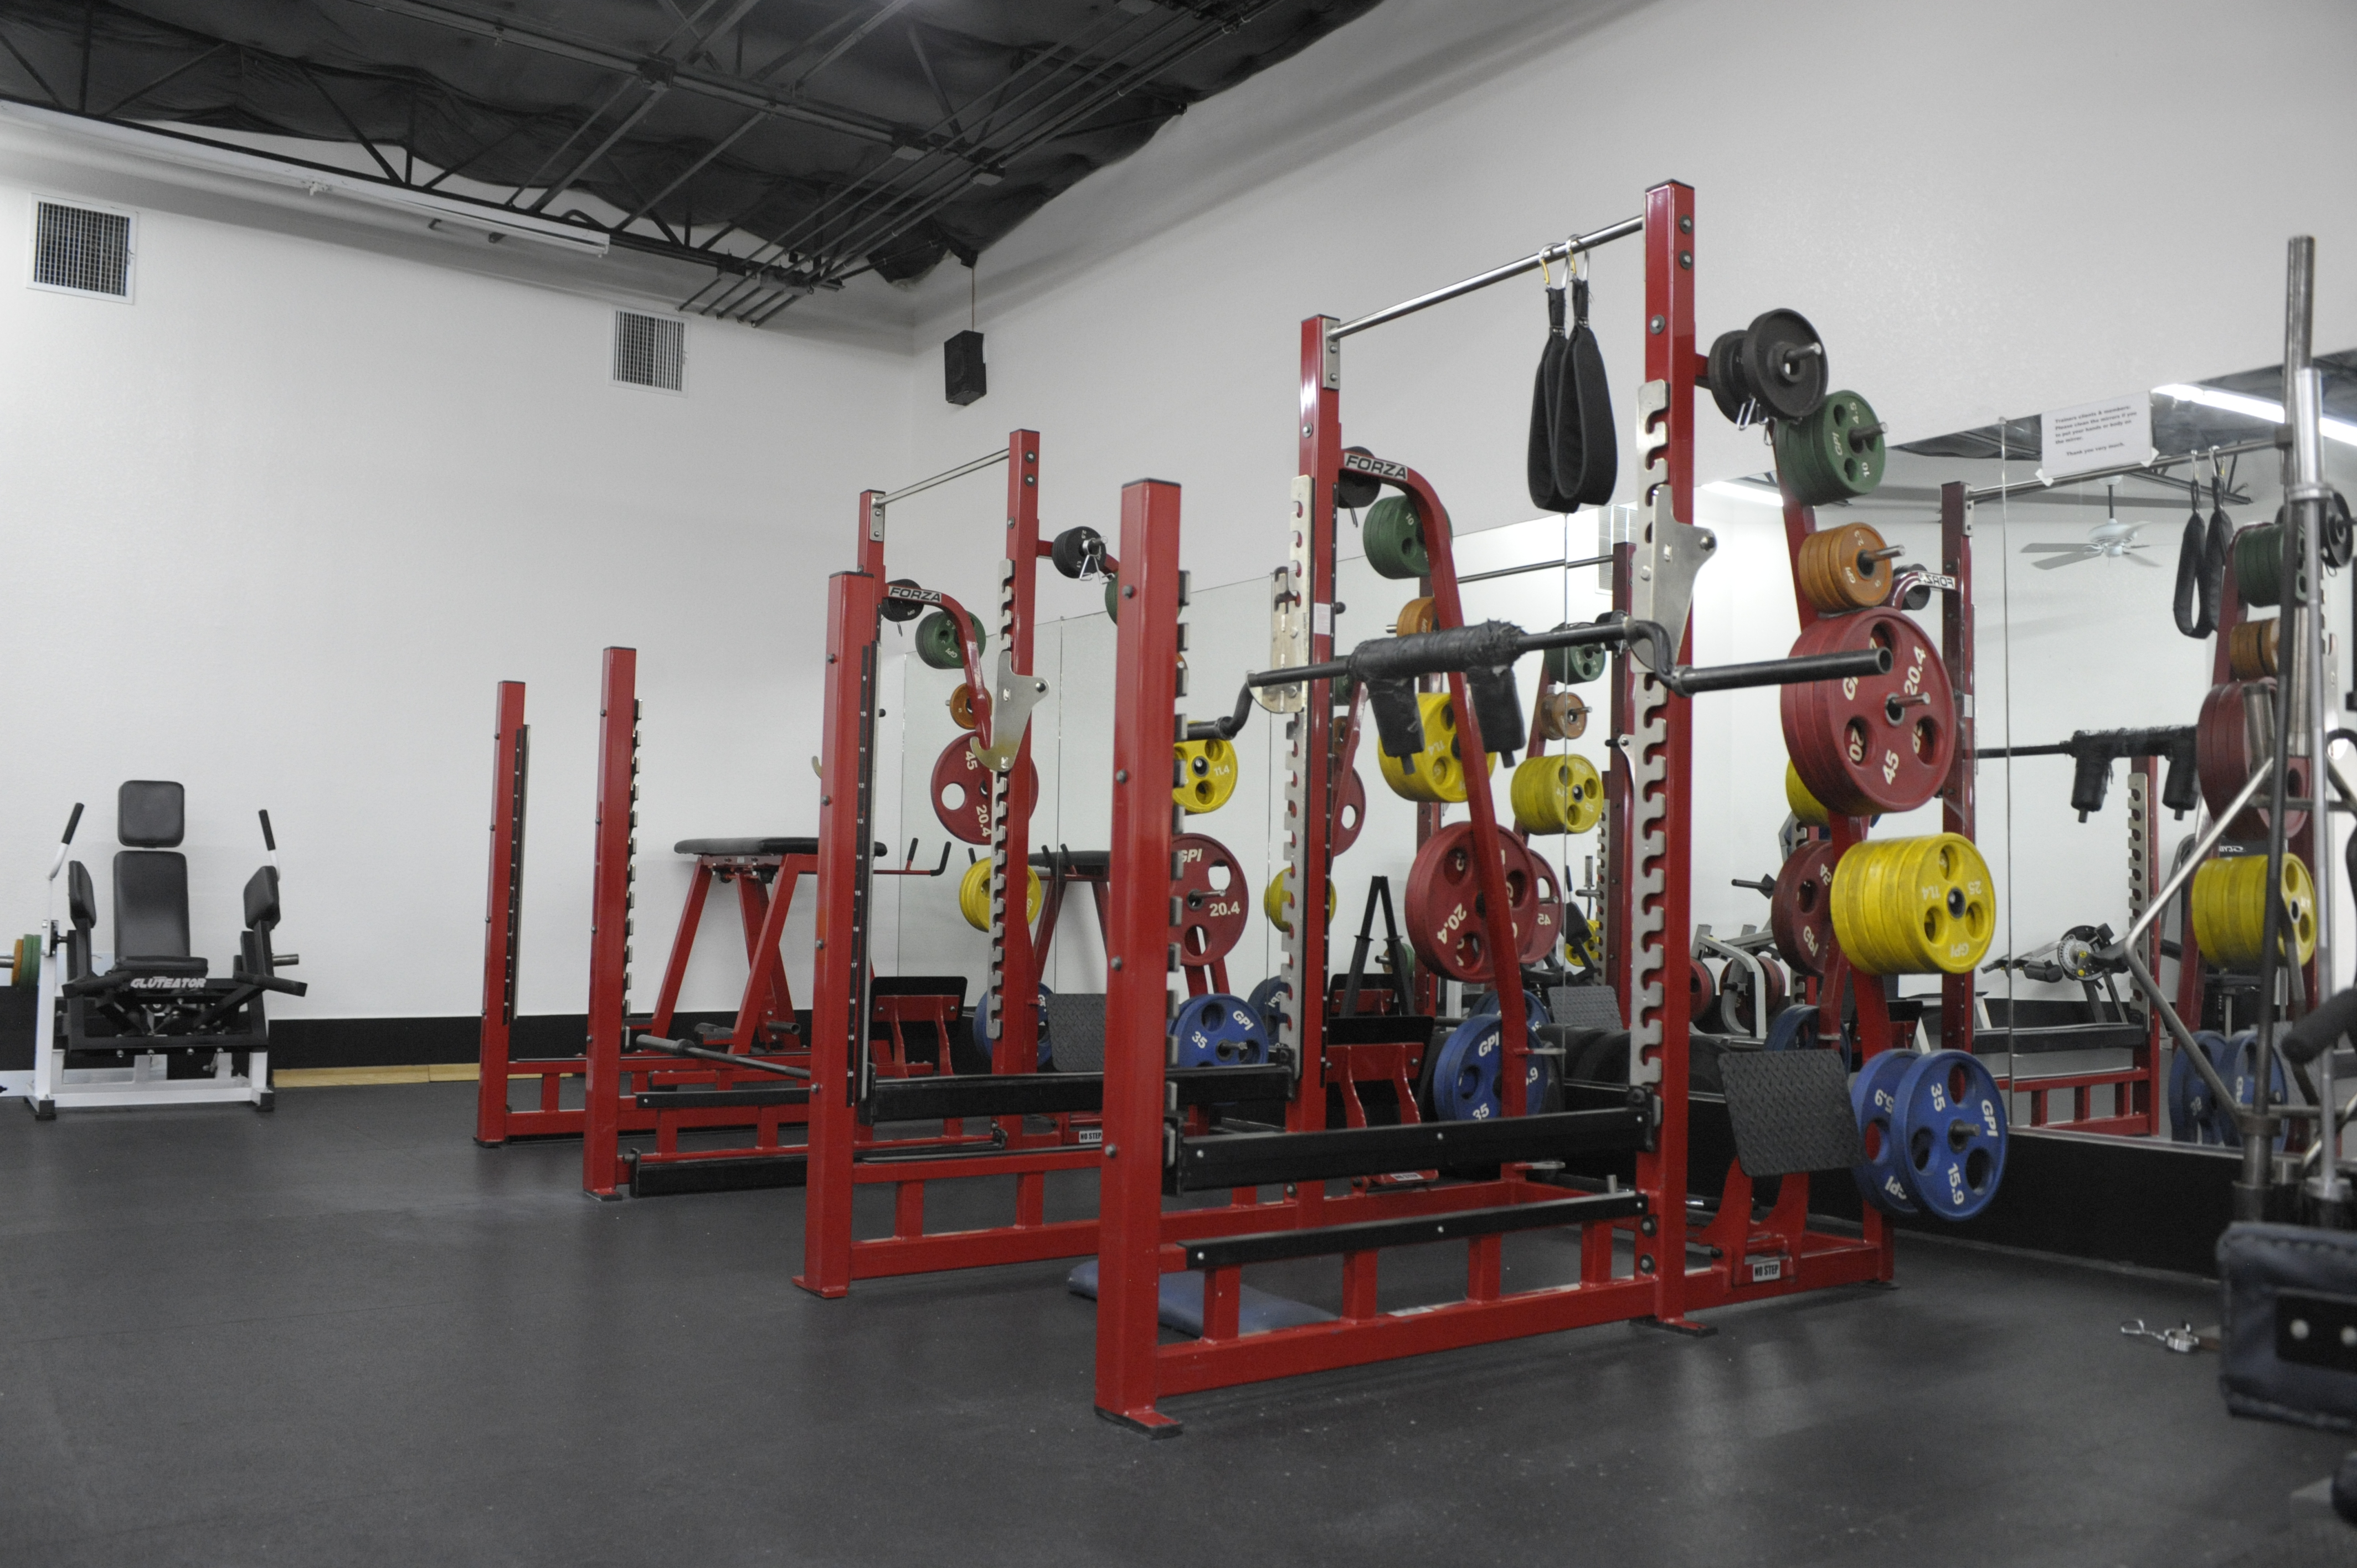 Squat Cages and Bars